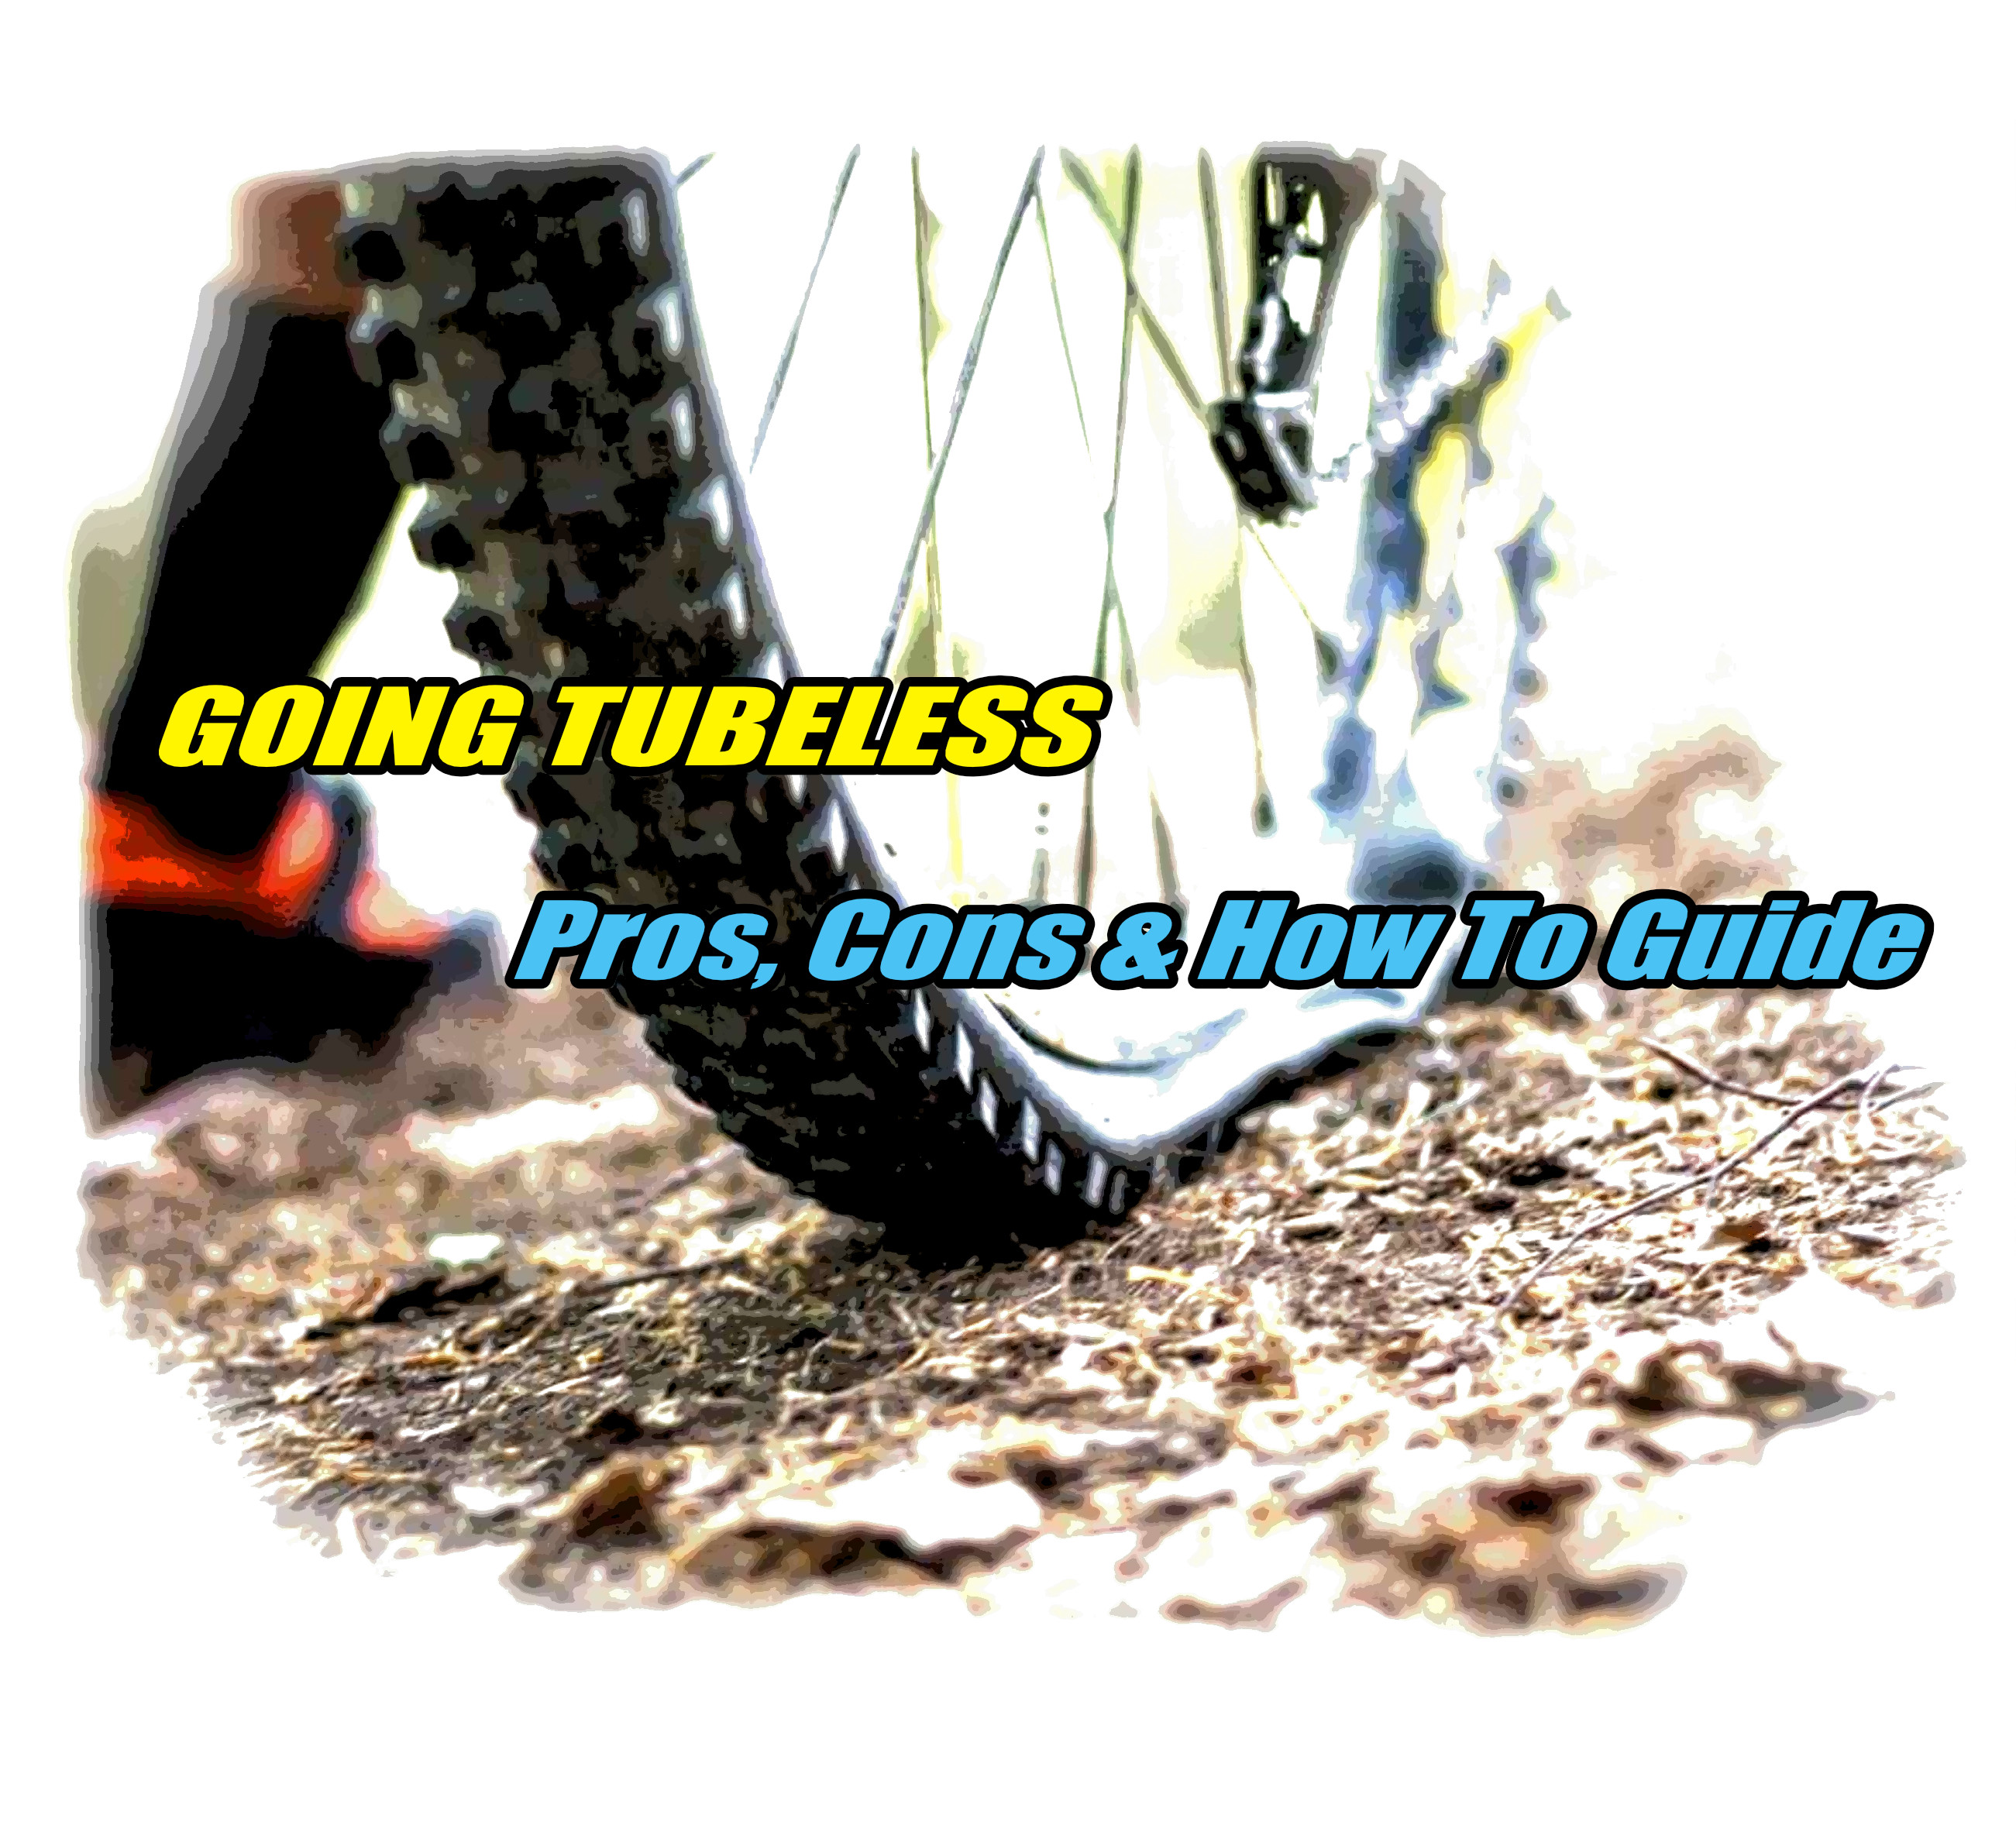 Going Tubeless momentum is your friend